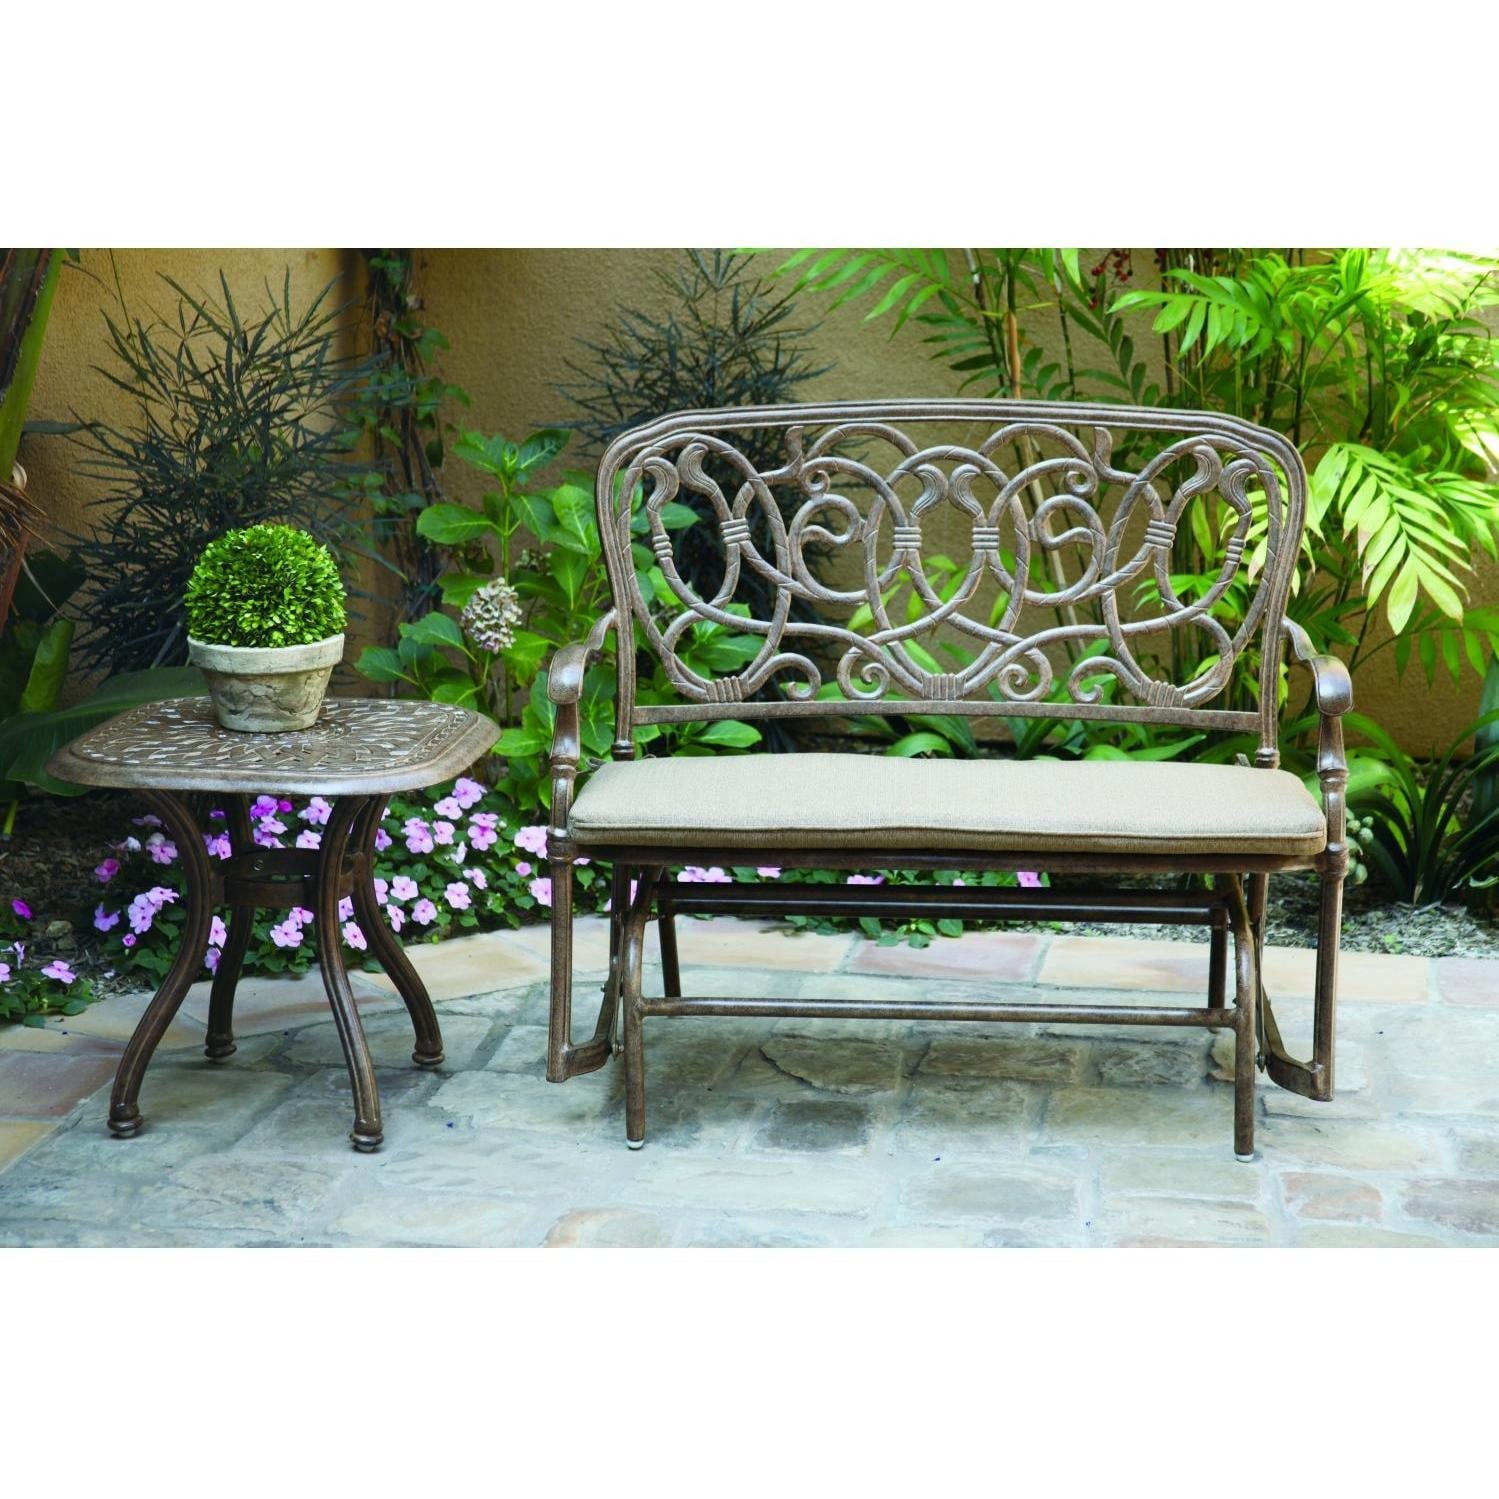 Darlee Florence 2 Piece Cast Aluminum Patio Bench Glider Conversation Seating